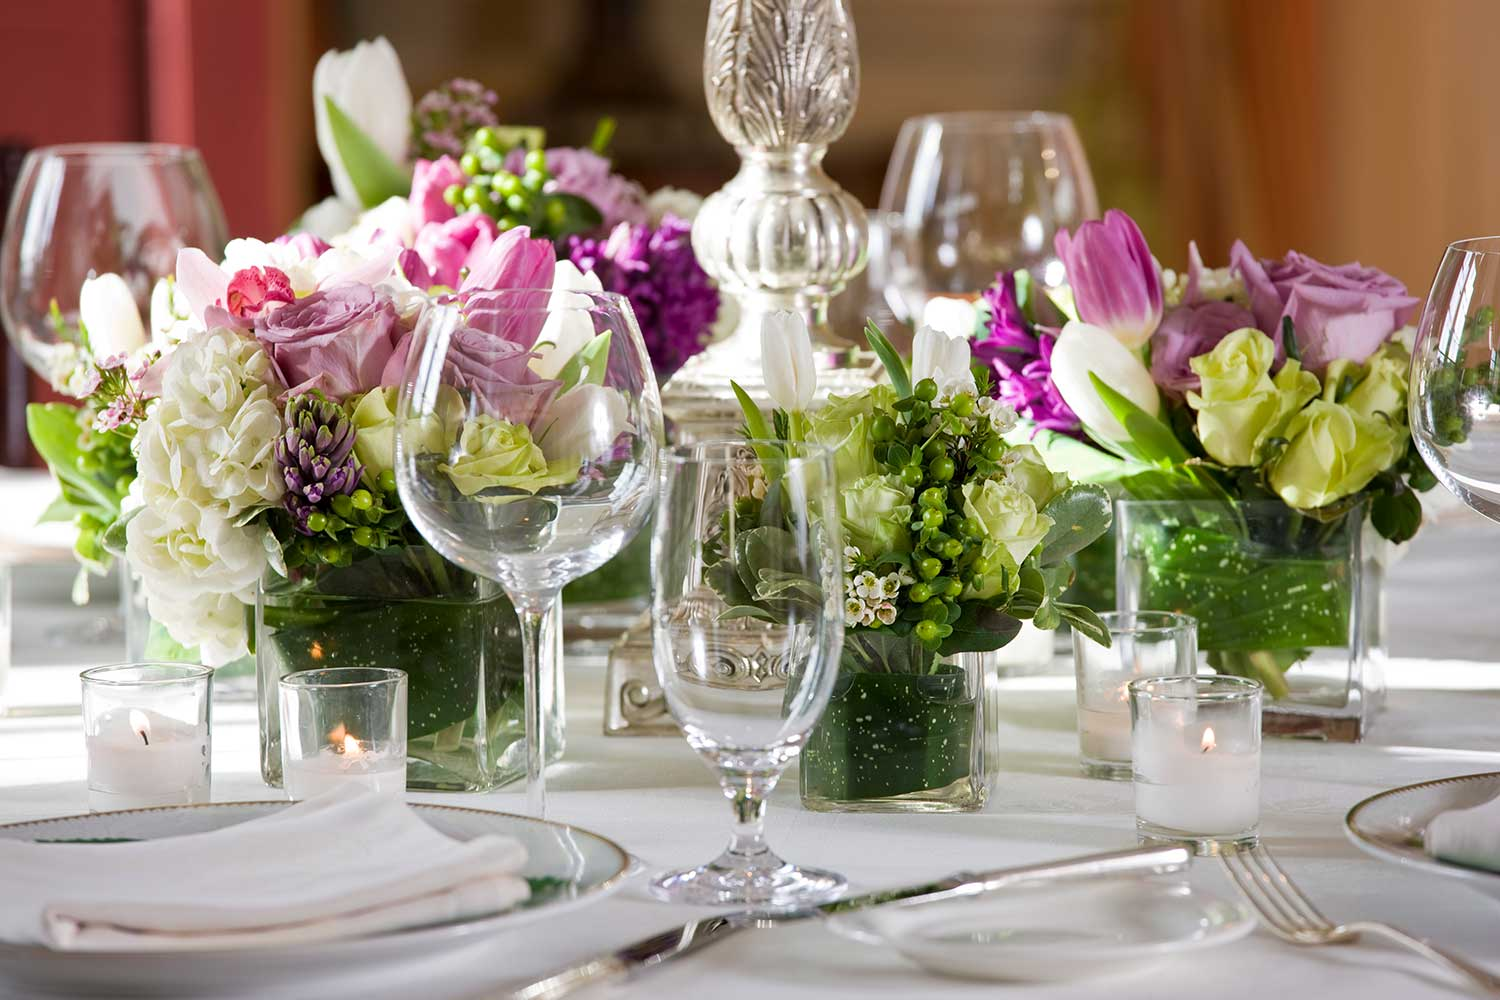 An event table featuring pink flowers and empty wine glasses.